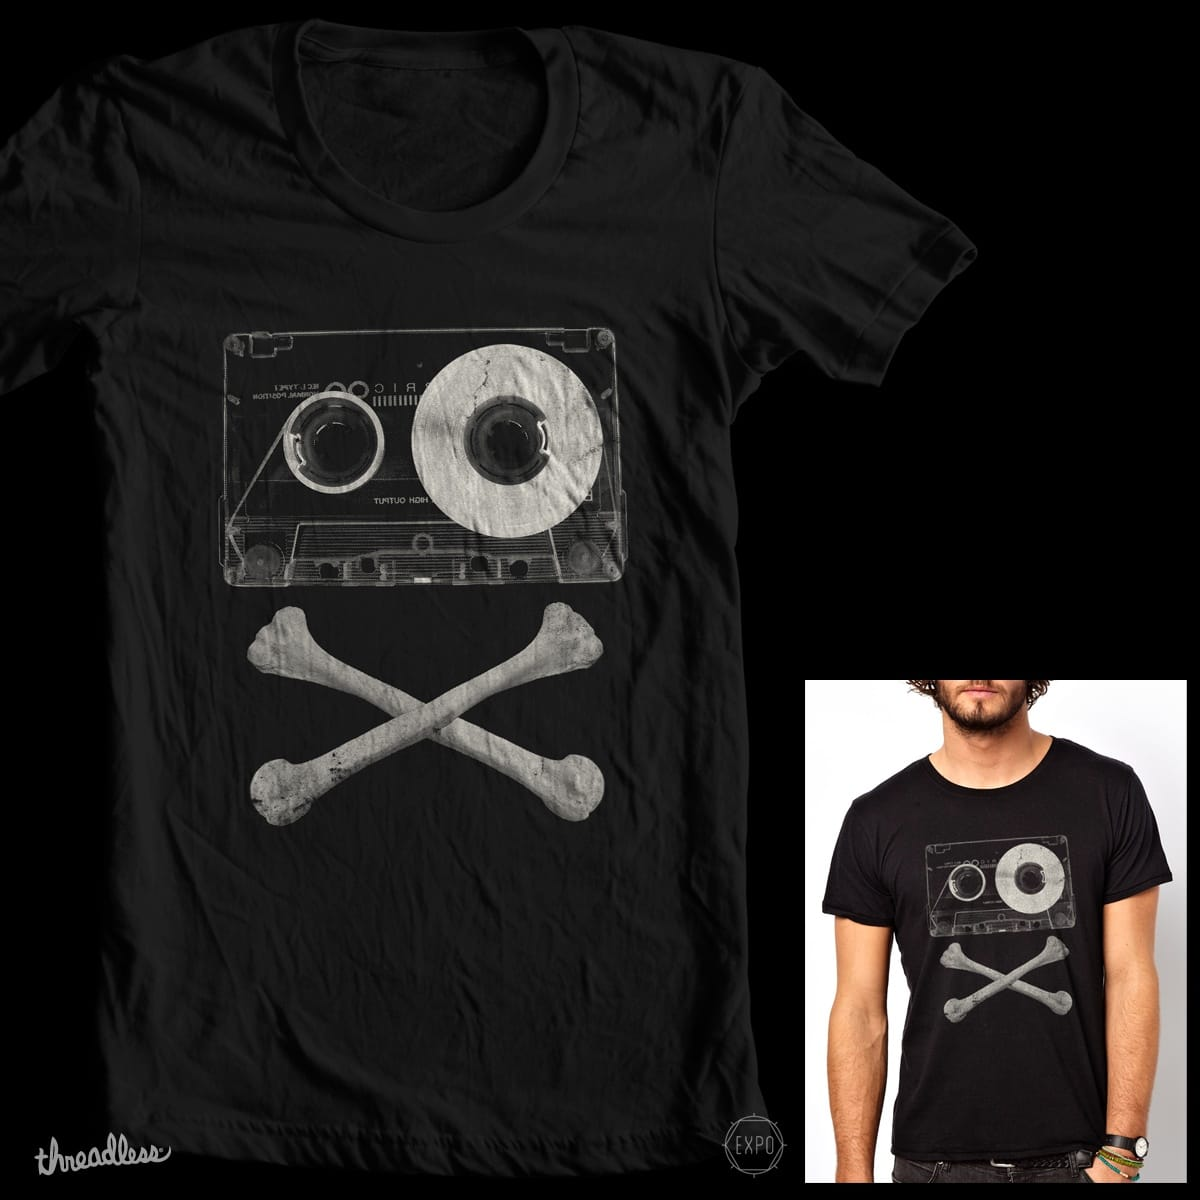 Pirate Music by expo on Threadless